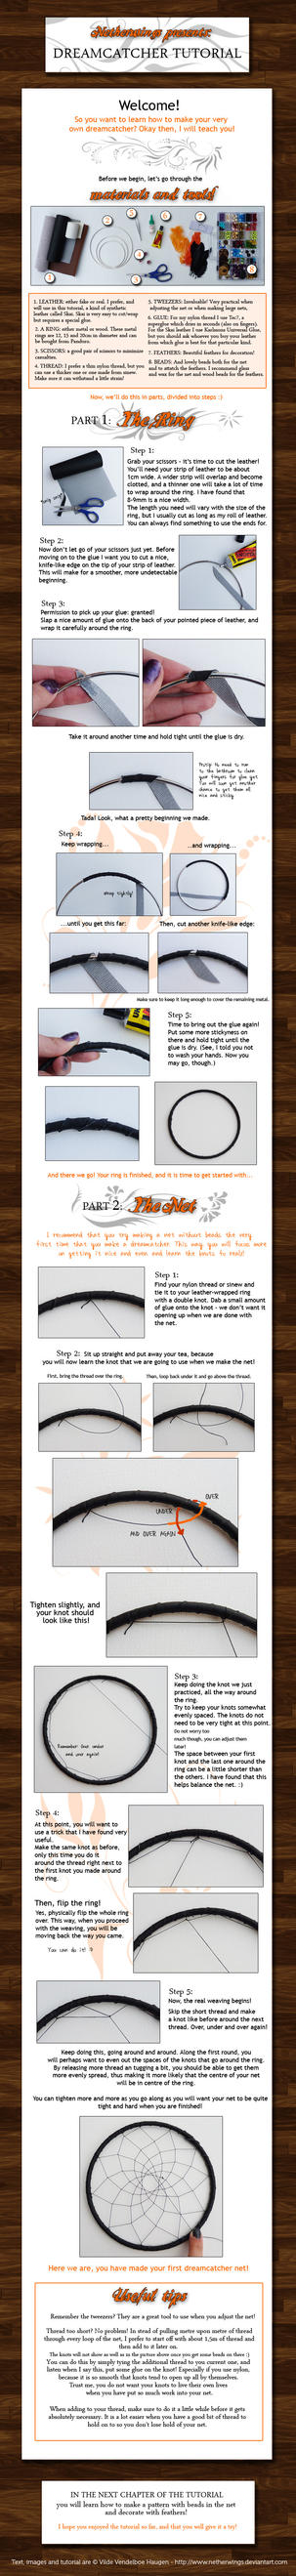 Dreamcatcher tutorial: Ch. 1 by netherwings